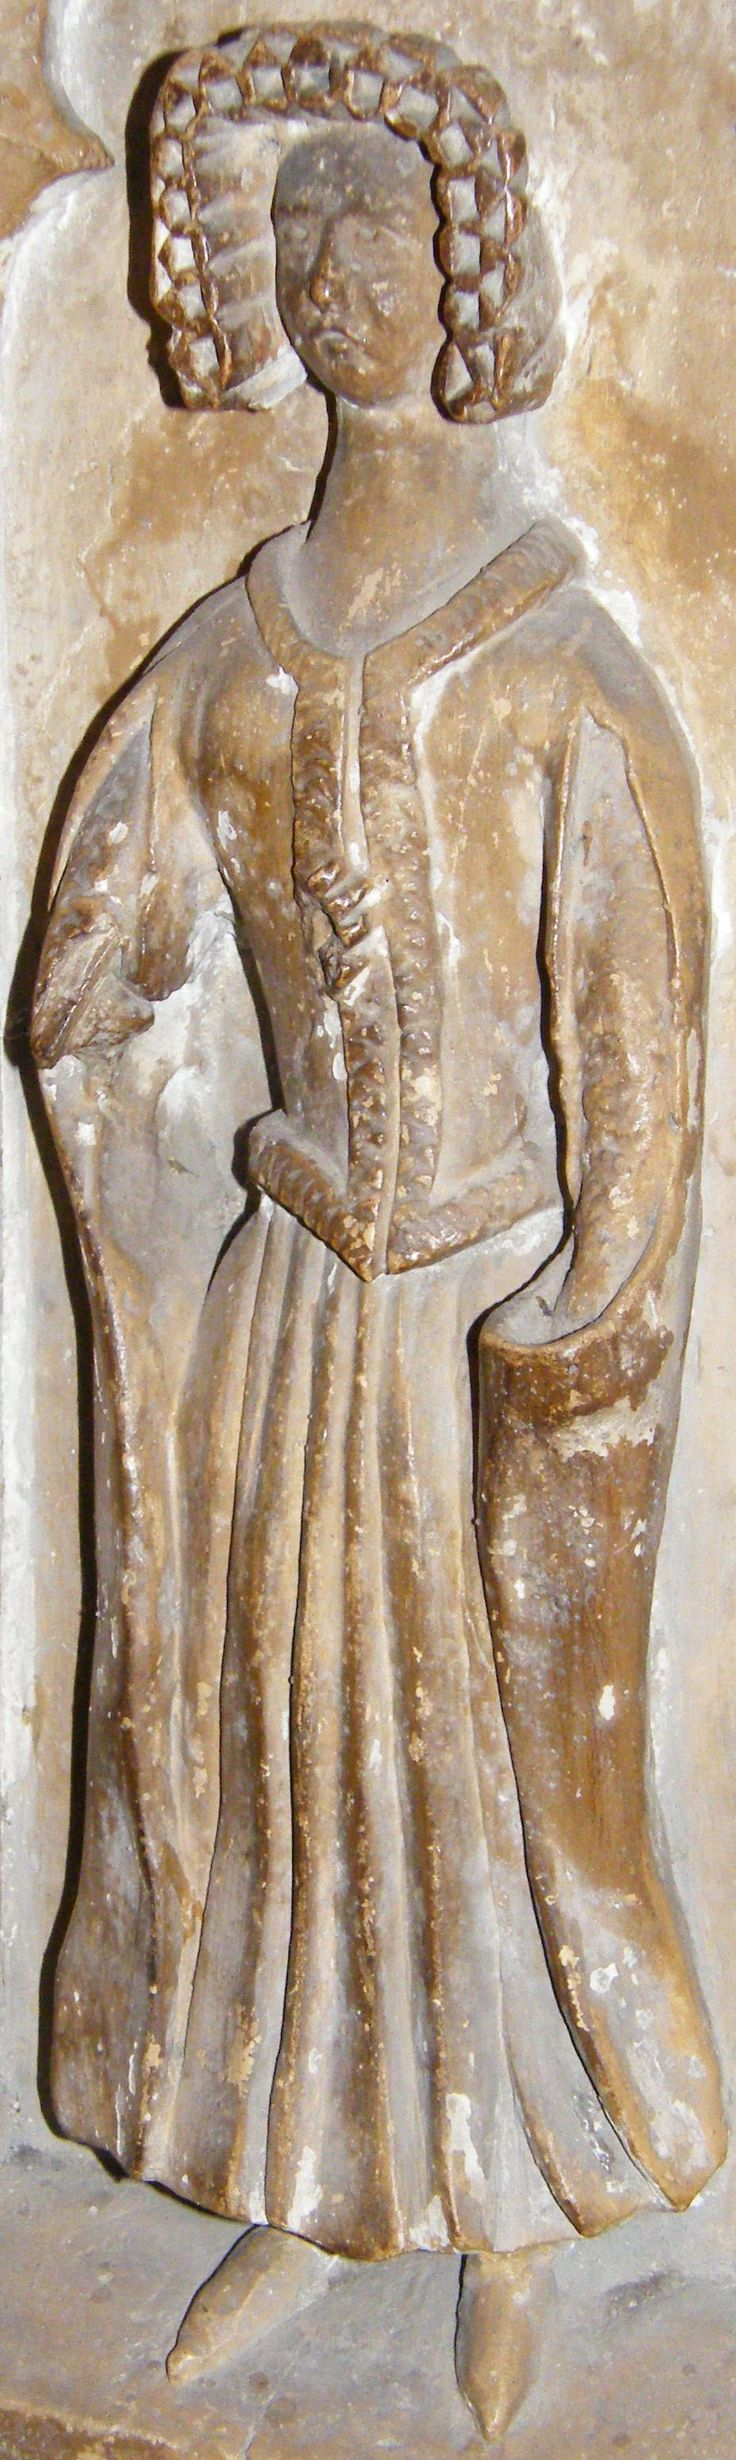 Weeper of Thomas Beauchamp and wife Katherine mortimer, 1369, Weeper 16 http://www.themcs.org/costume/Female/Warwick%20-%20St%20Mary%20Thomas%20Beauchamp%201369%20and%20wife%20Katherine%20mortimer%201369%20weeper%2016%20female%2080.JPG